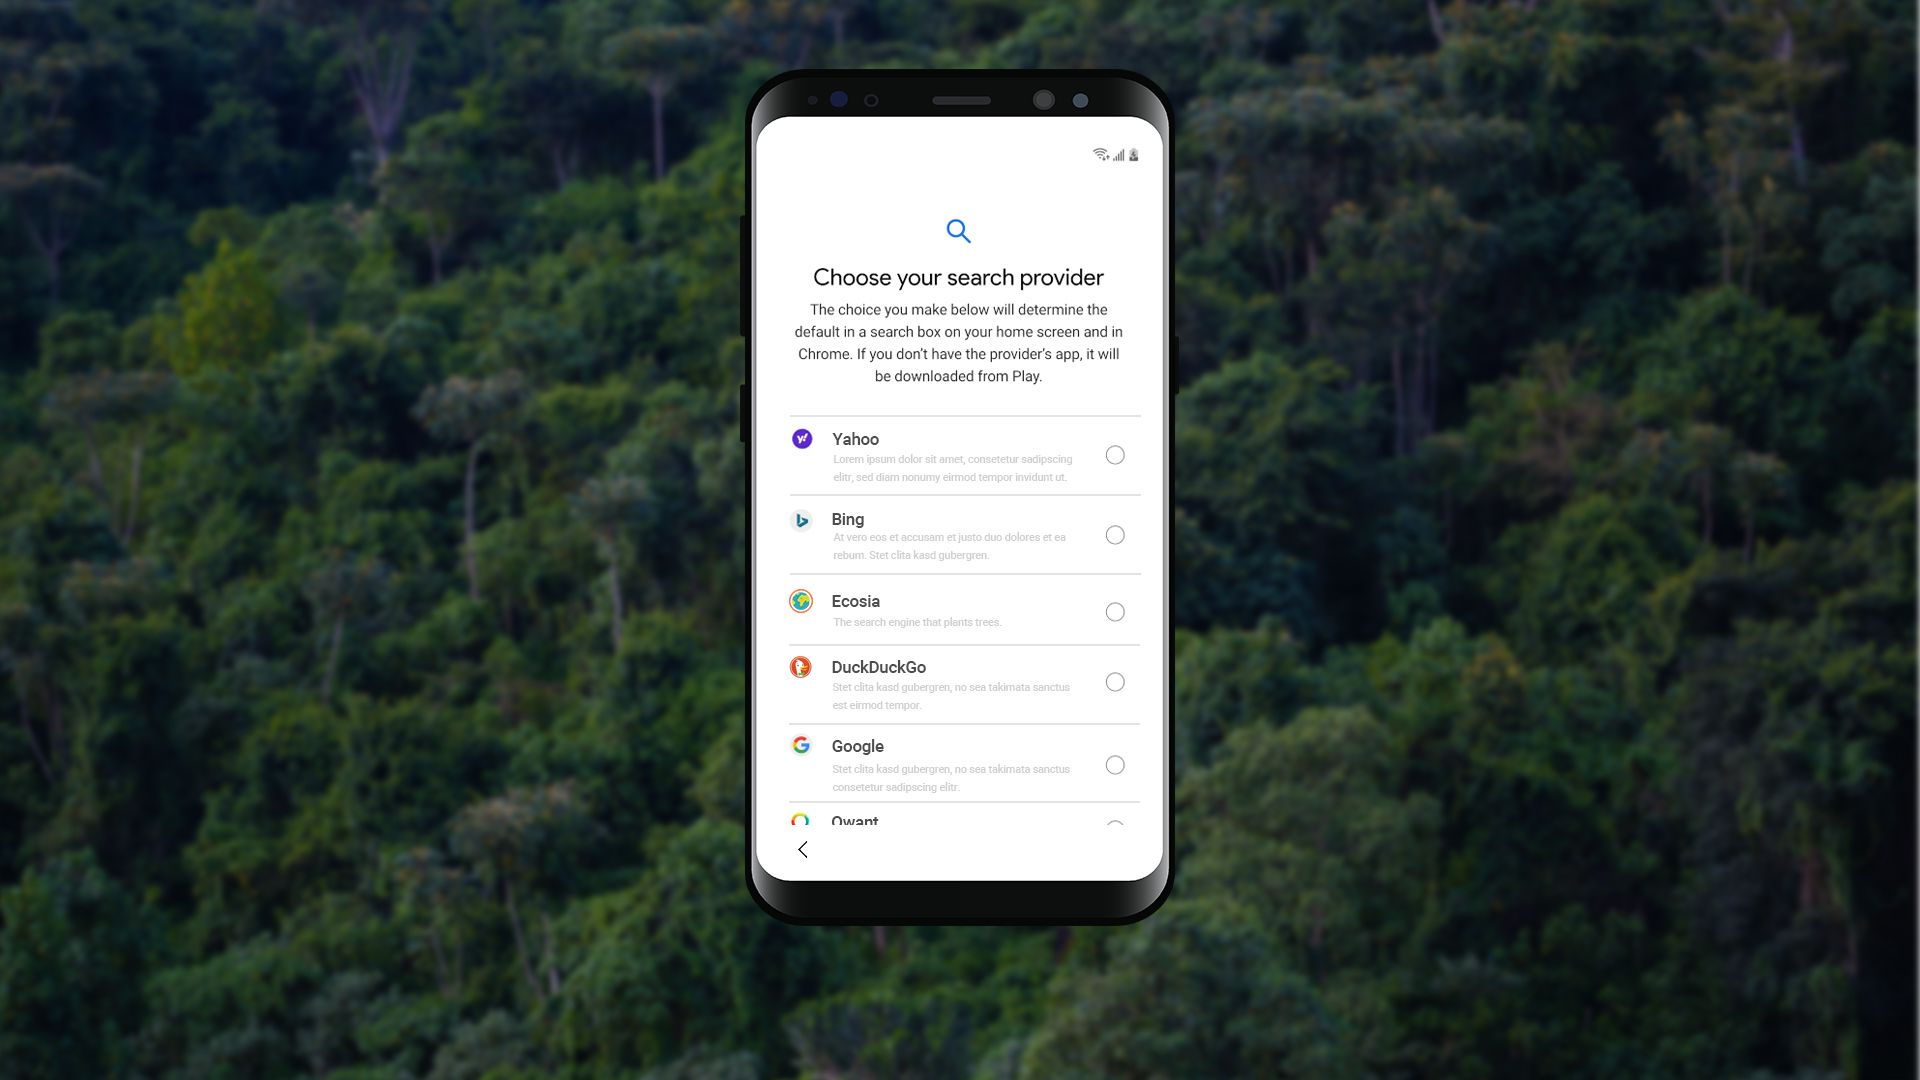 Ecosia's suggestion for Android's choice screen